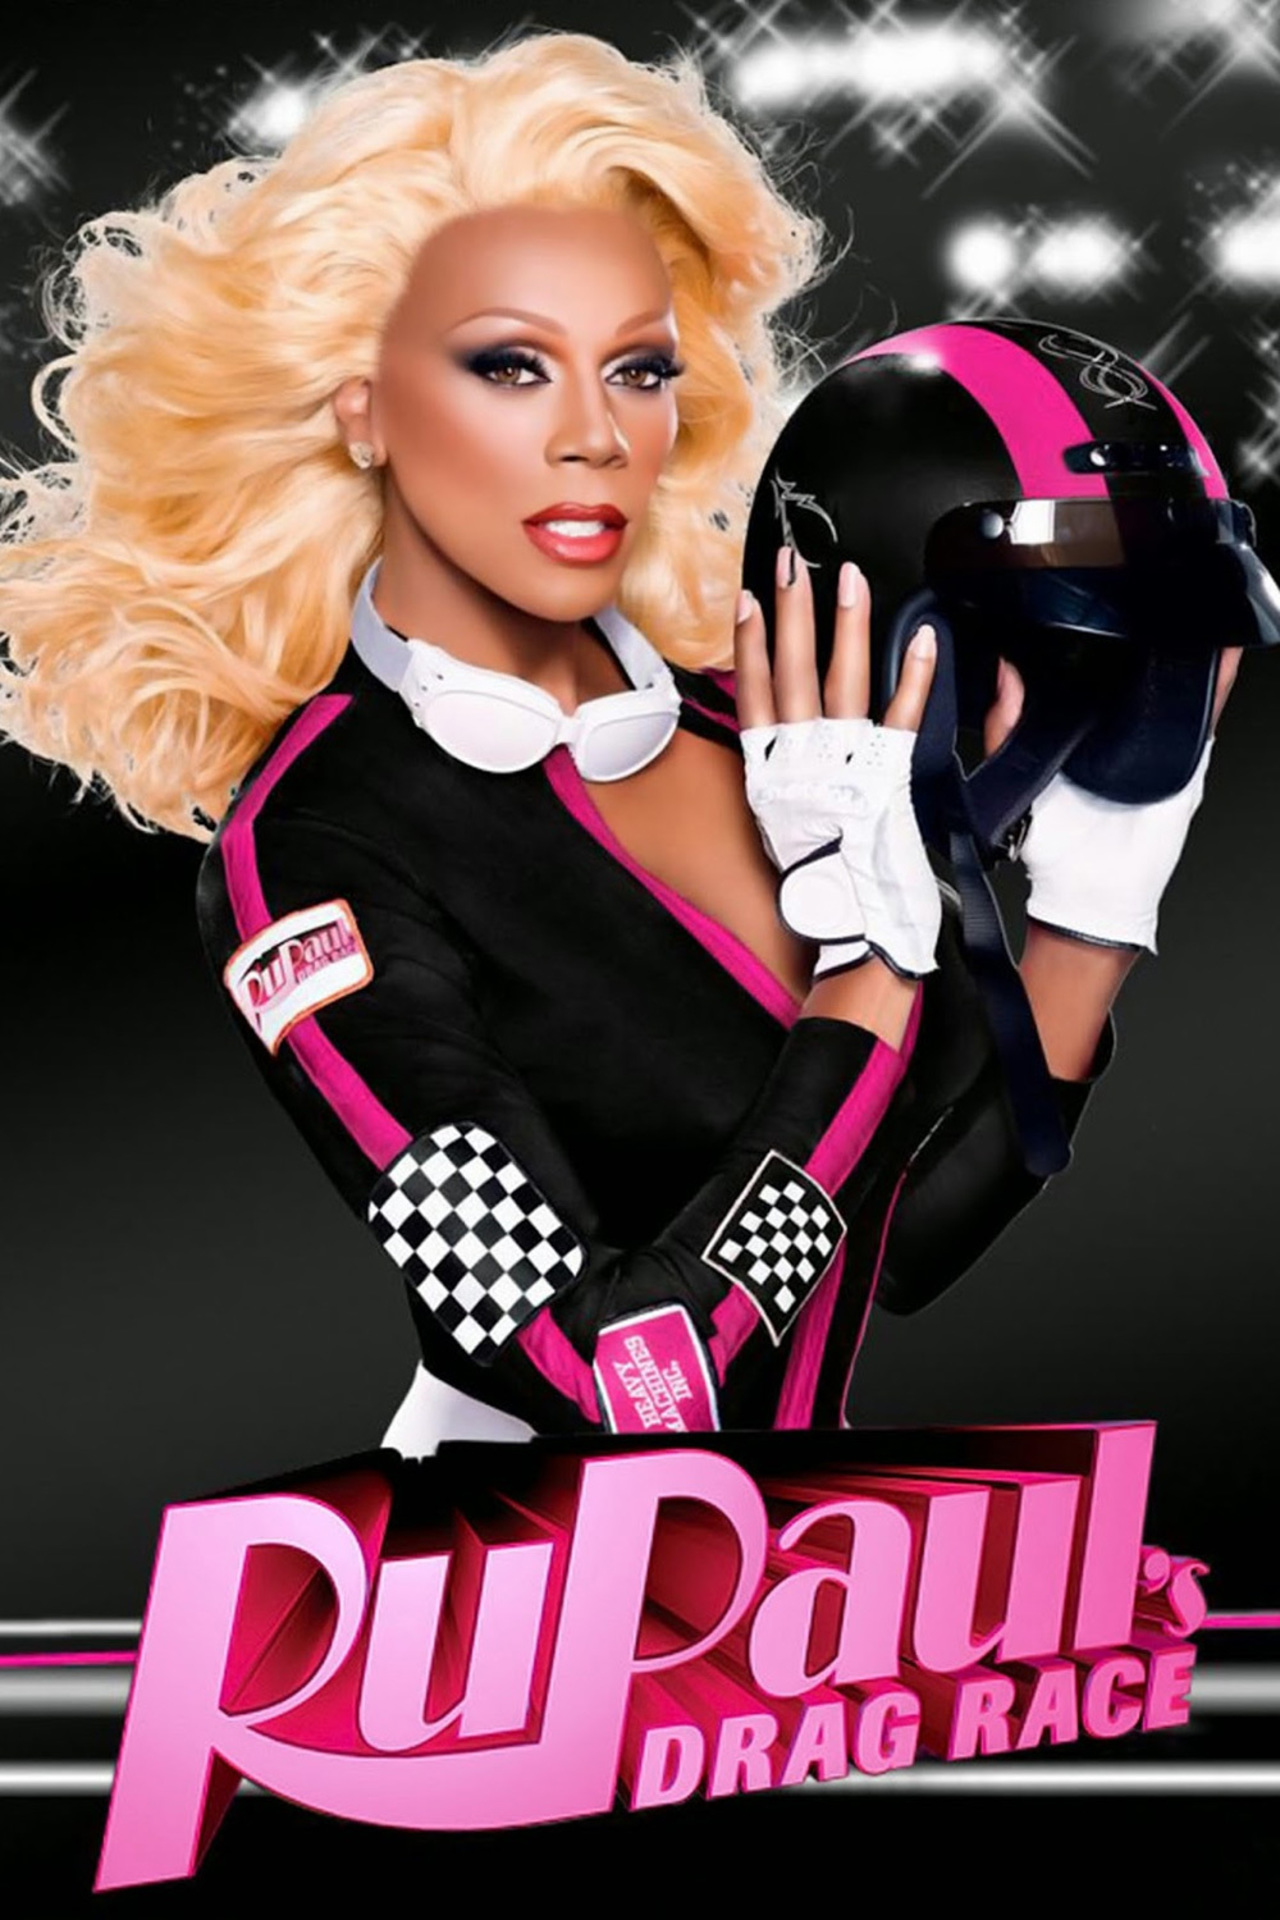 RuPauls Drag Race Season 5 Projectfreetv